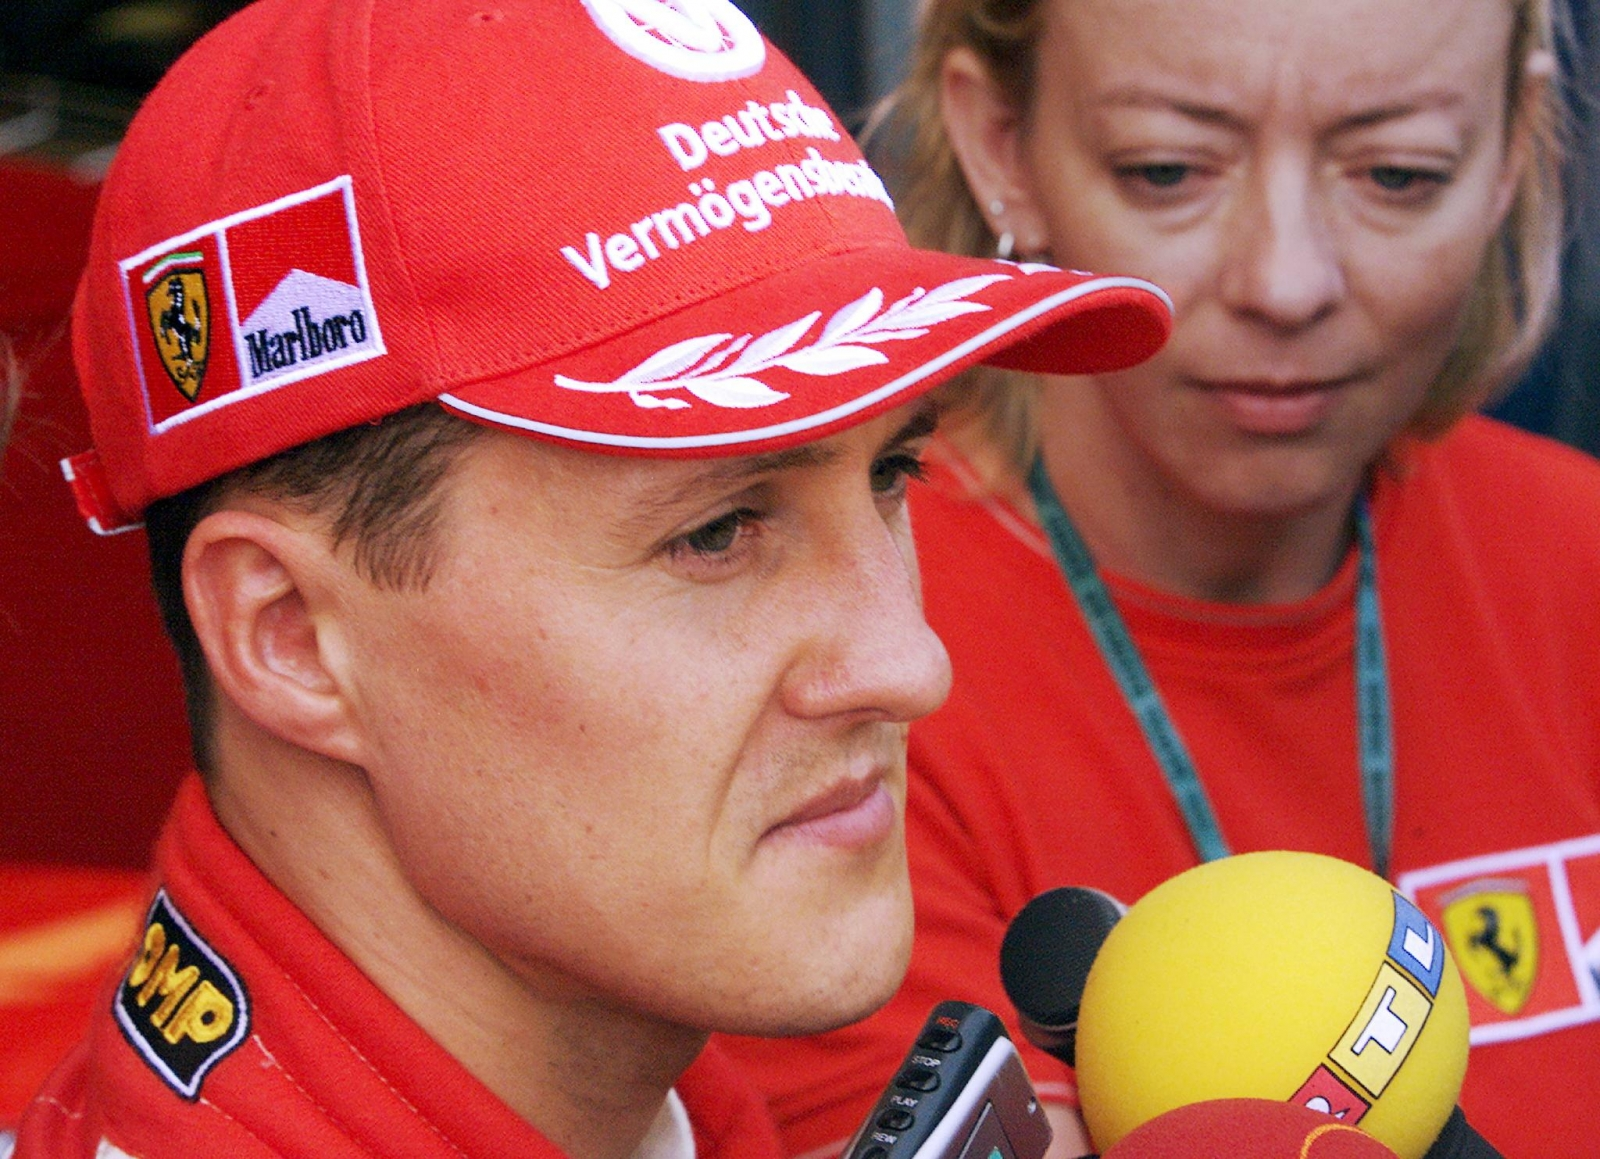 Sabine Kehm (right) said there is no timeline on Michael Schumacher's recovery